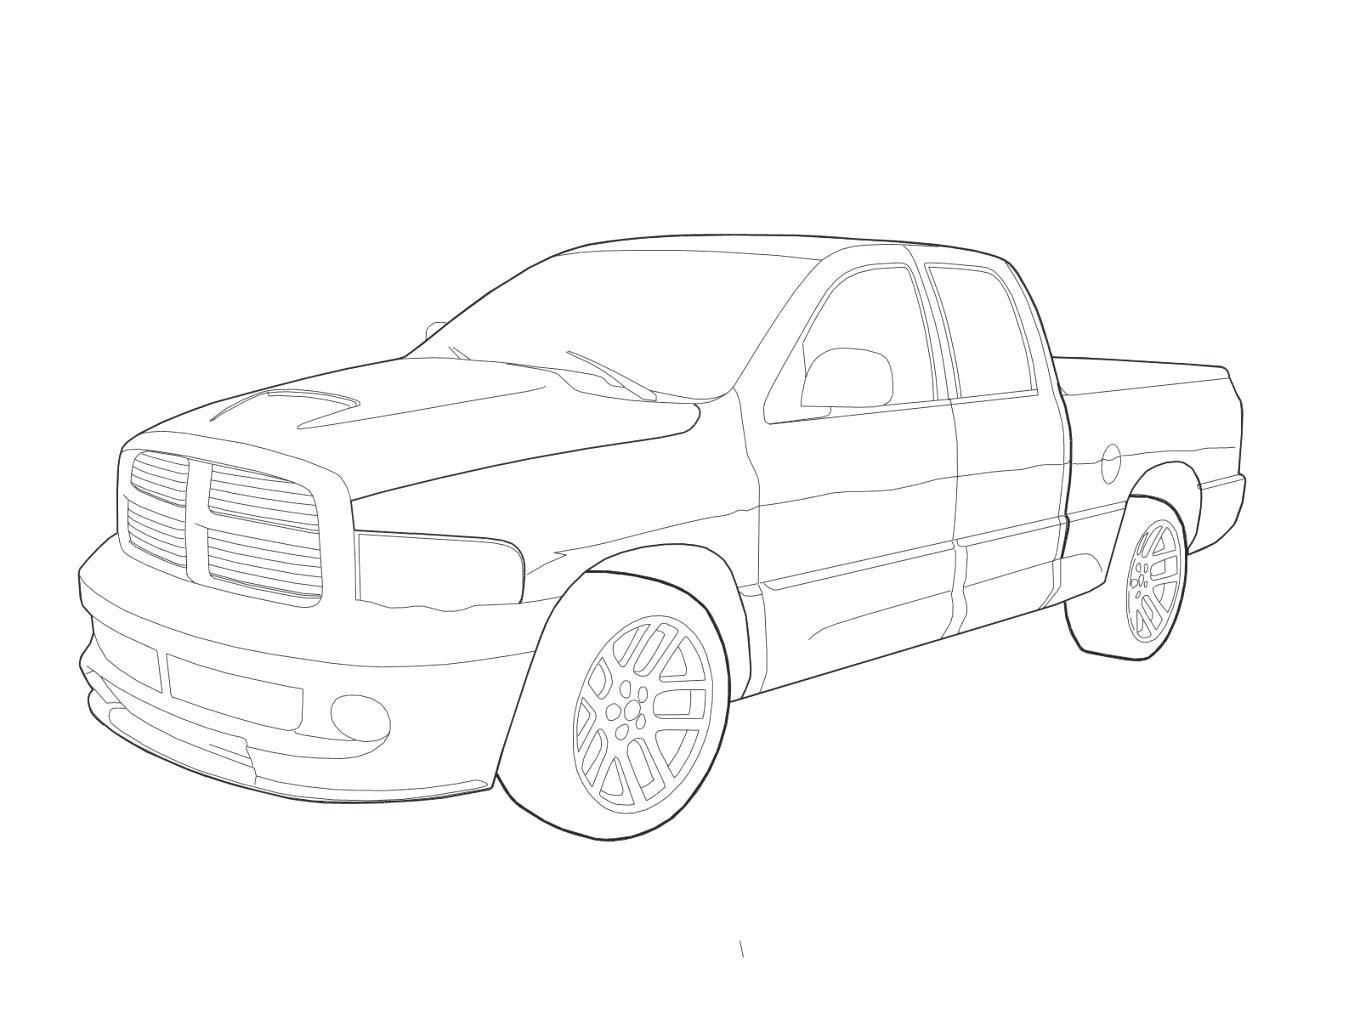 1360x1020 coloring 1969 dodge charger coloring pages challenger drawing k